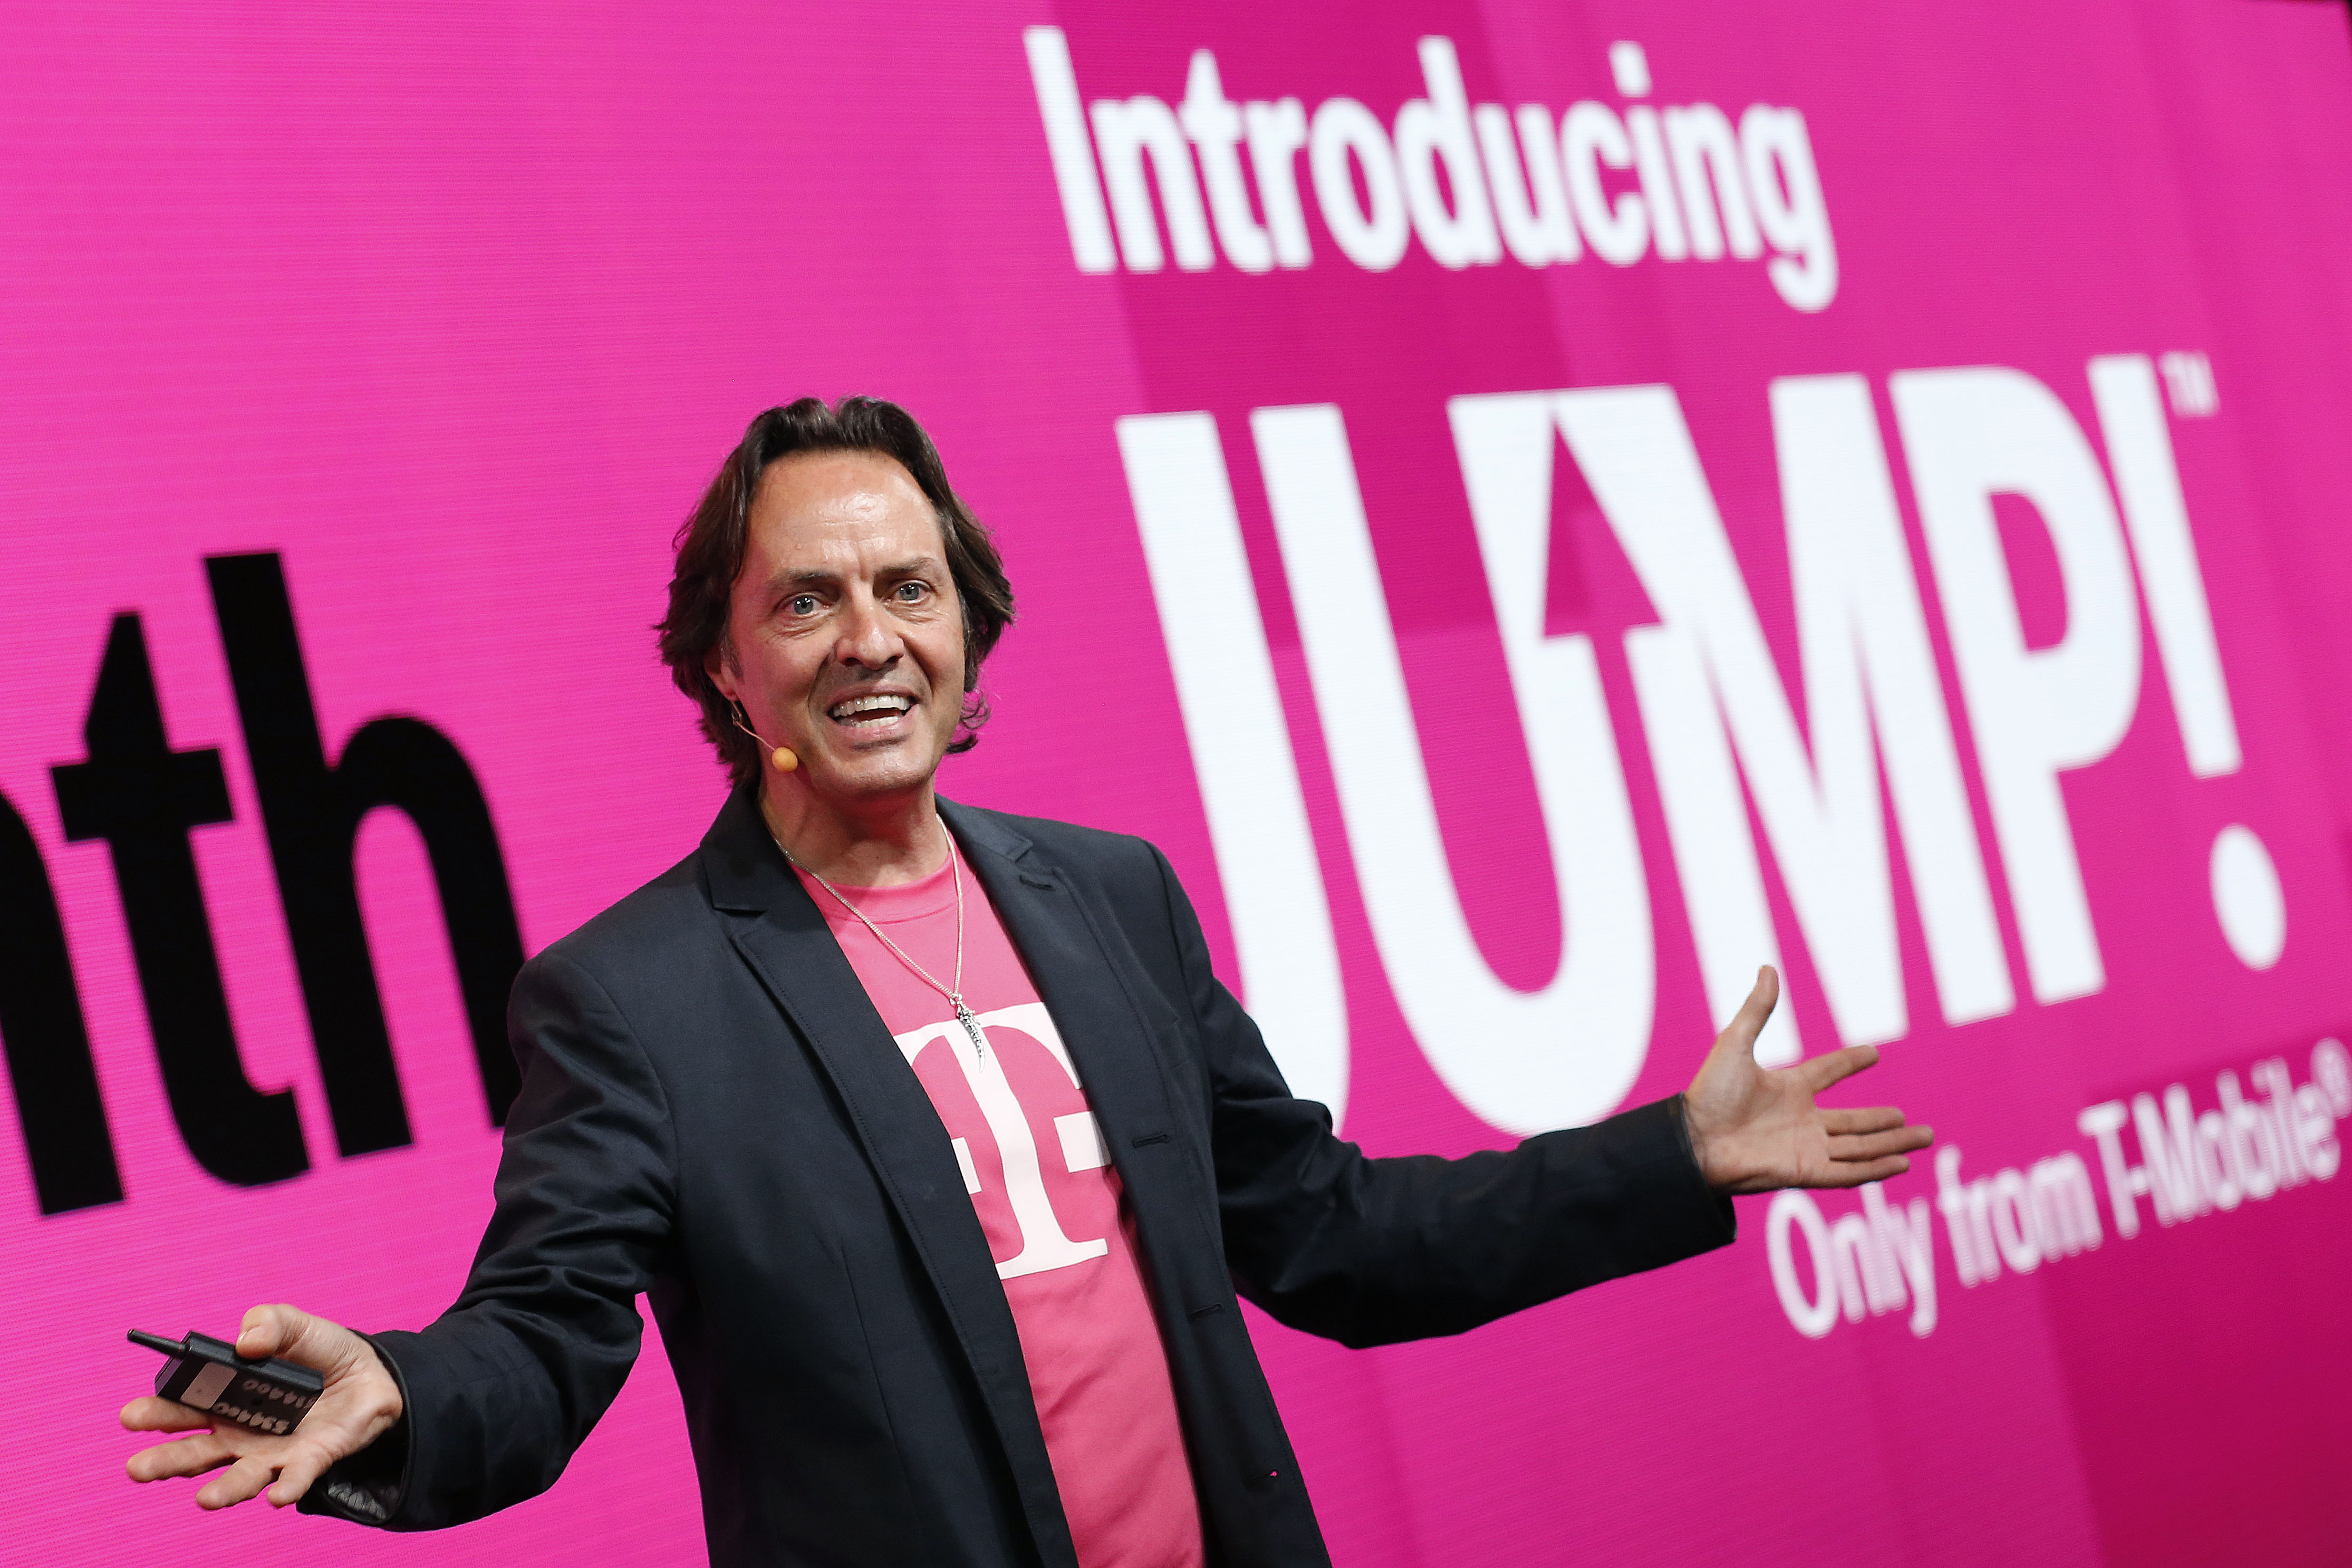 T-Mobile Tuesday struggles again, extends gifts through Friday